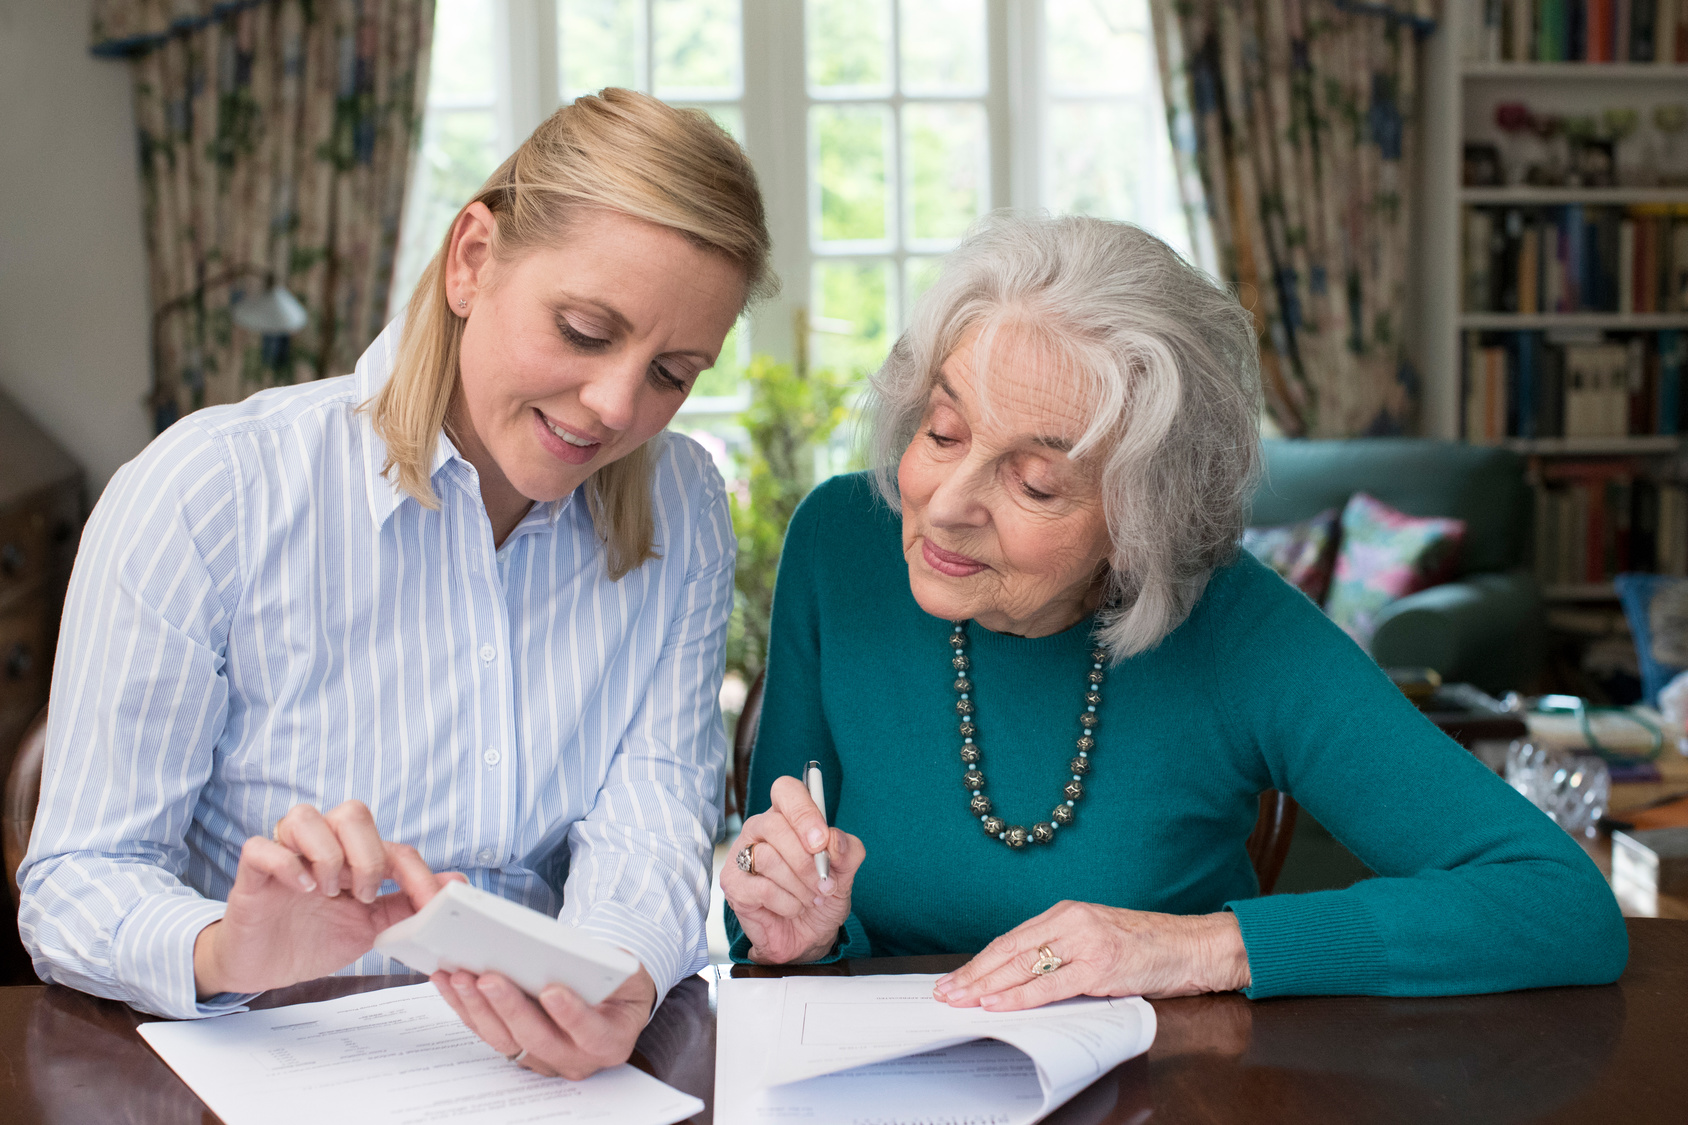 Caregiver-Elderly-Woman-Reviewing-Taxes